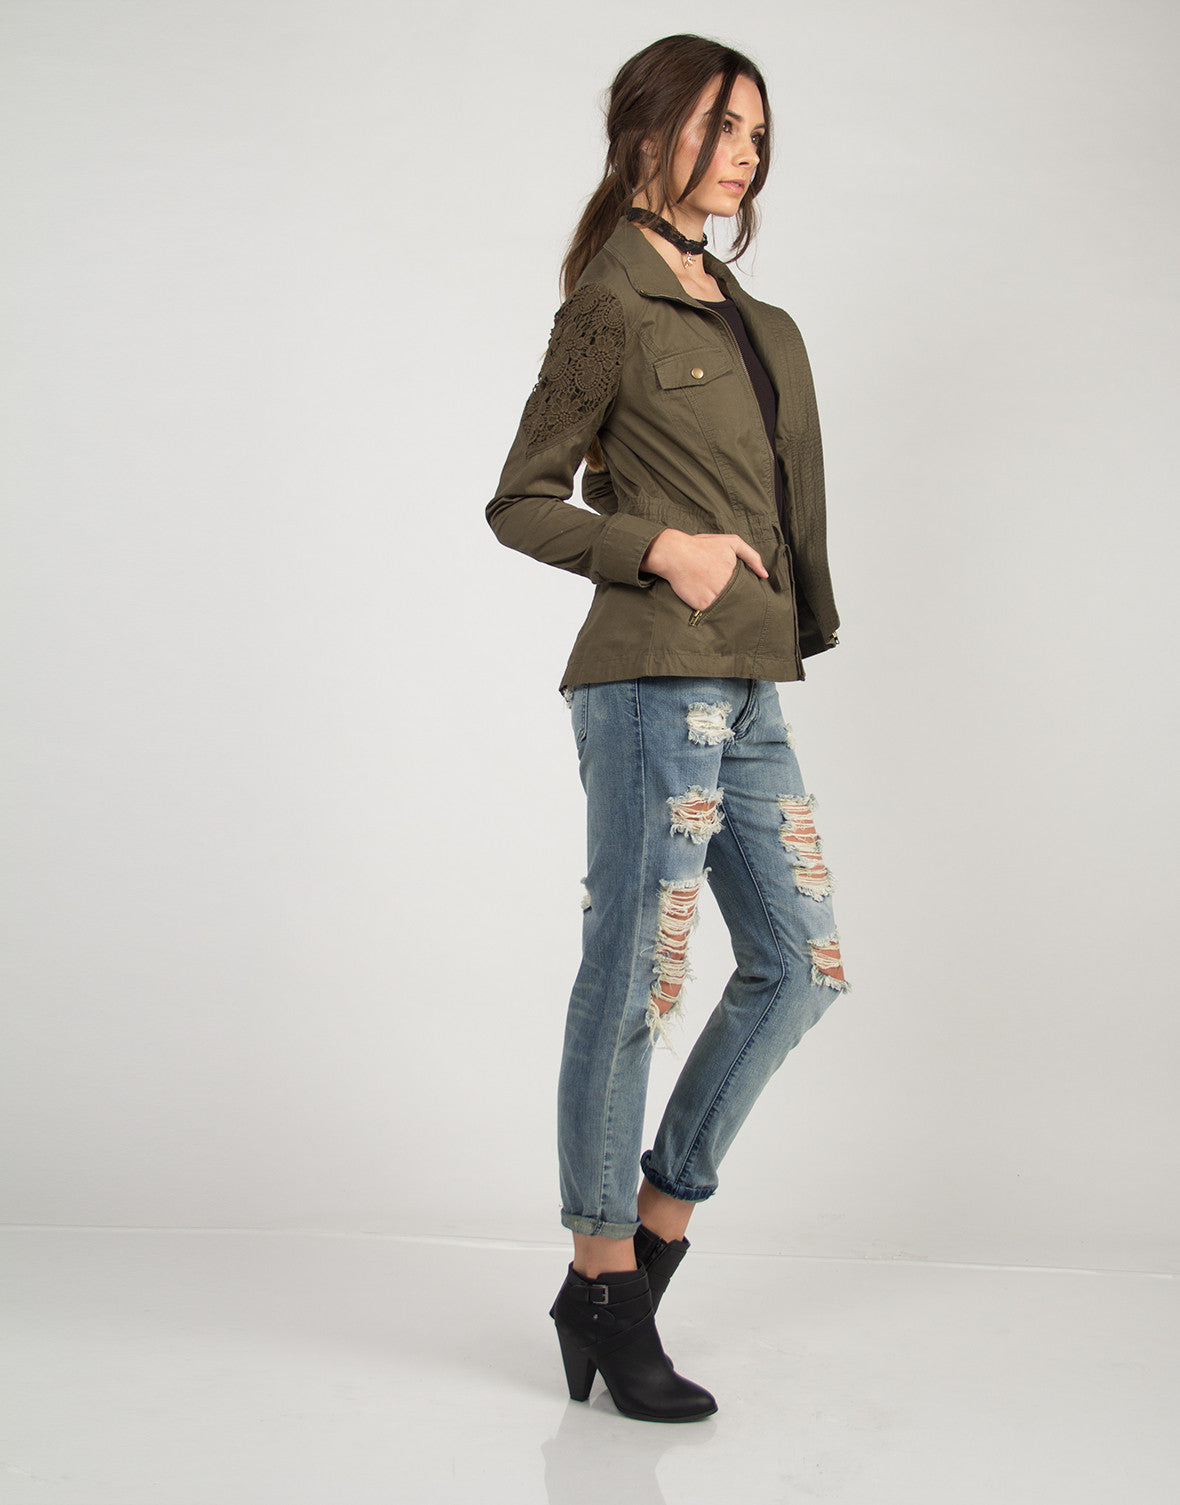 Crochet Detail Military Jacket - Olive